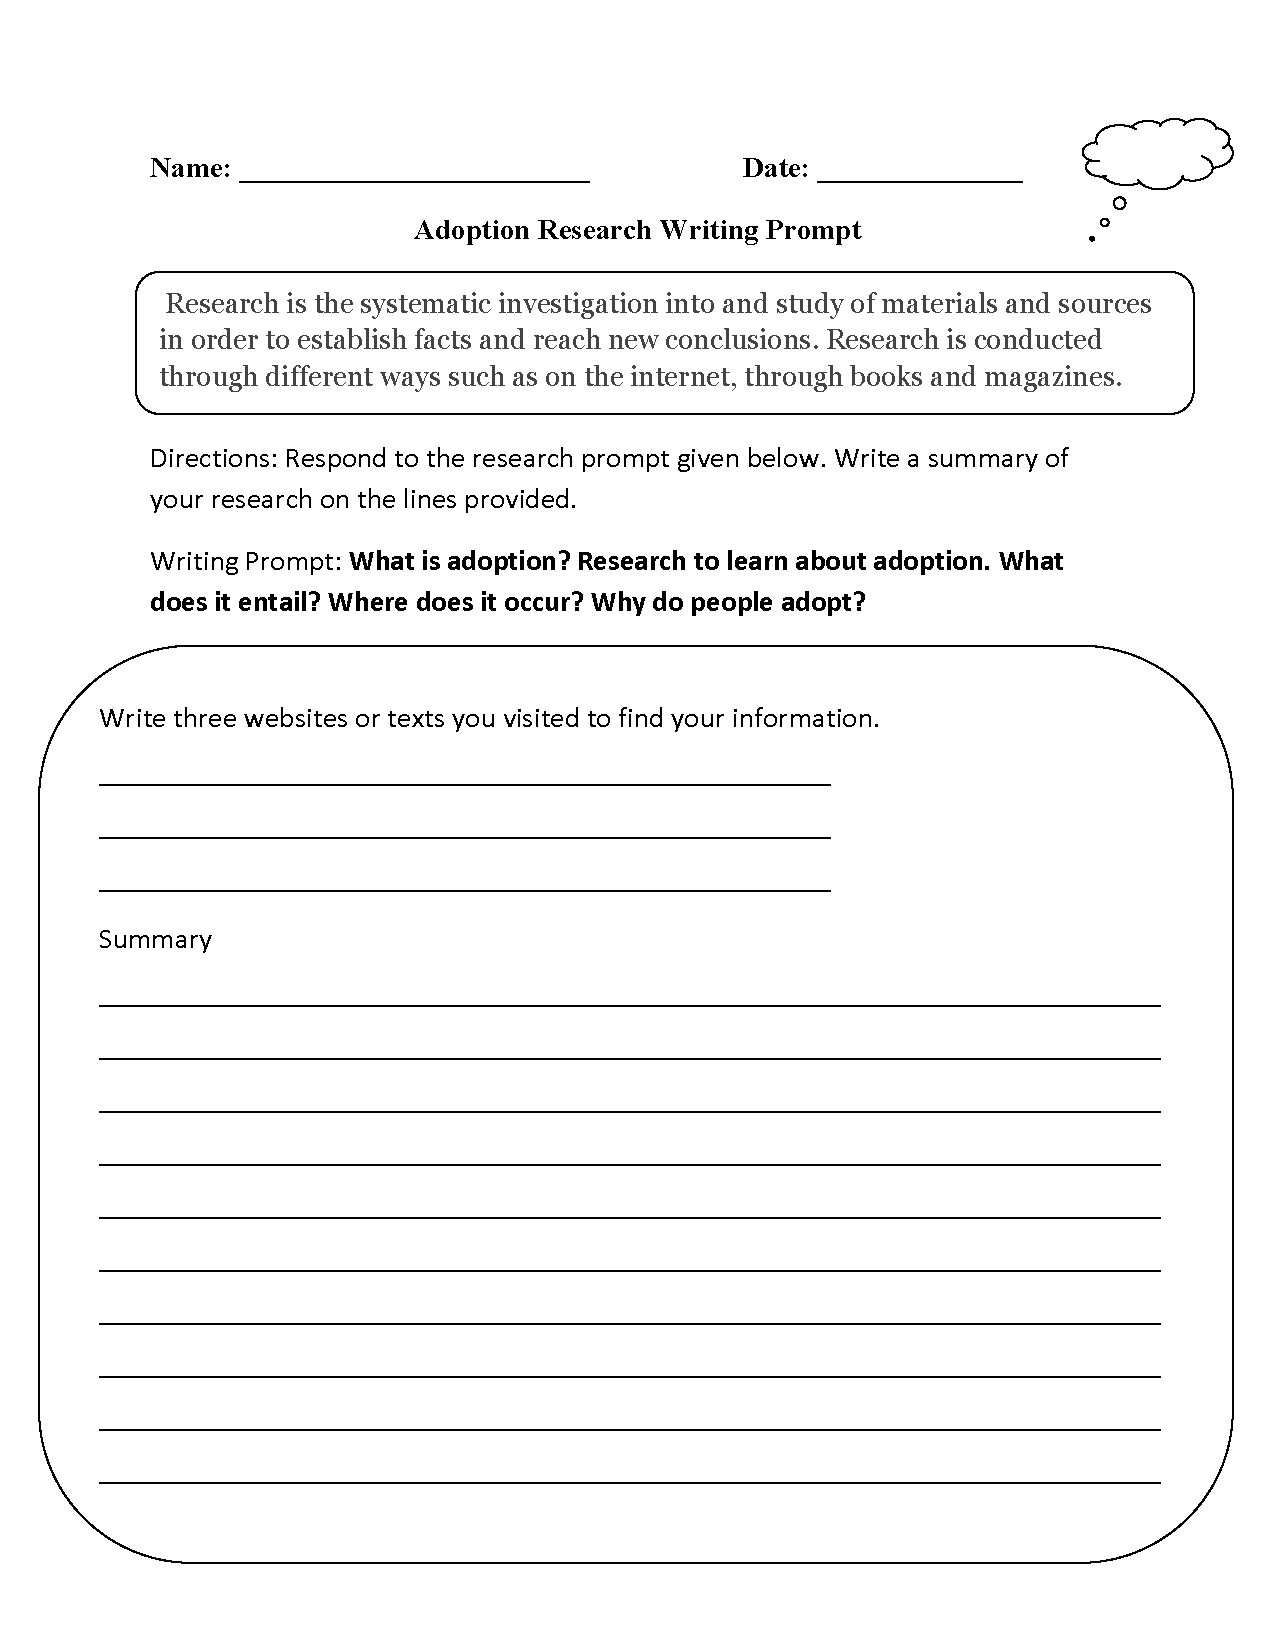 writing prompt worksheets 2018-6-17  sneak peek inside the writing prompt boot camp dedicate the next two weeks of your life to crafting stories thanks to these creative writing story ideas.